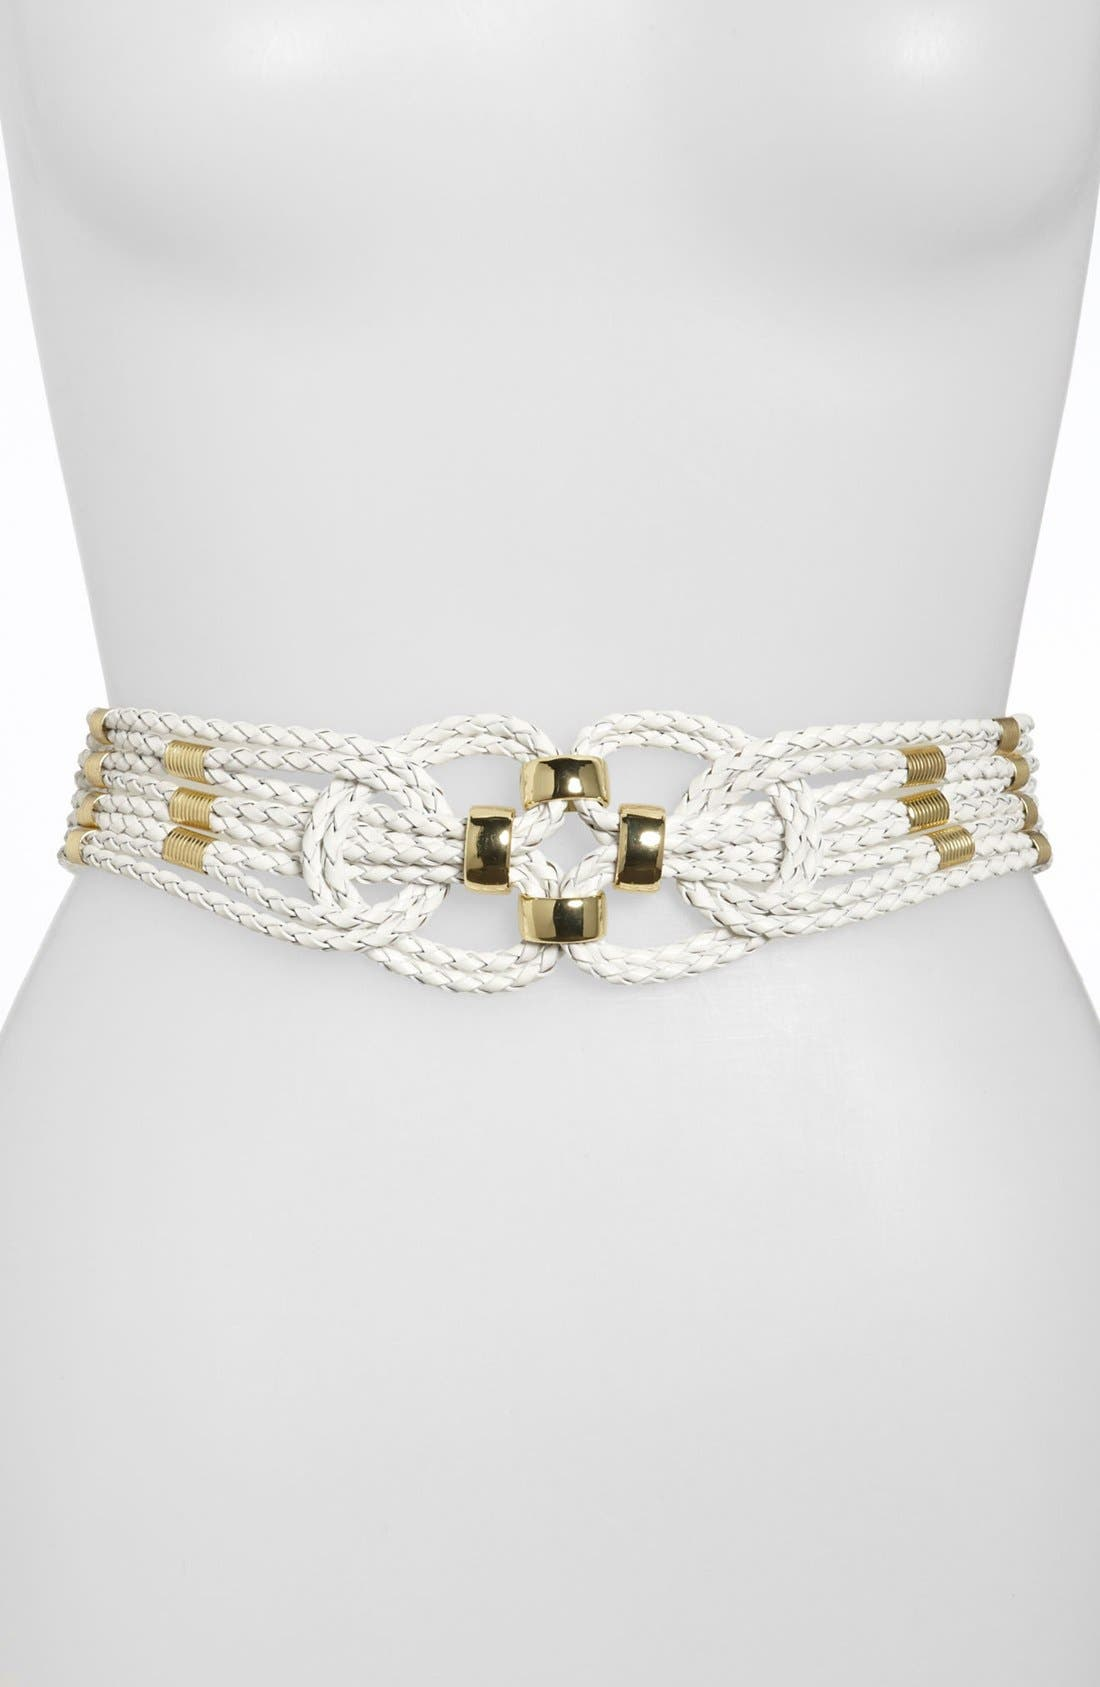 Main Image - Another Line Braided Leather Stretch Belt